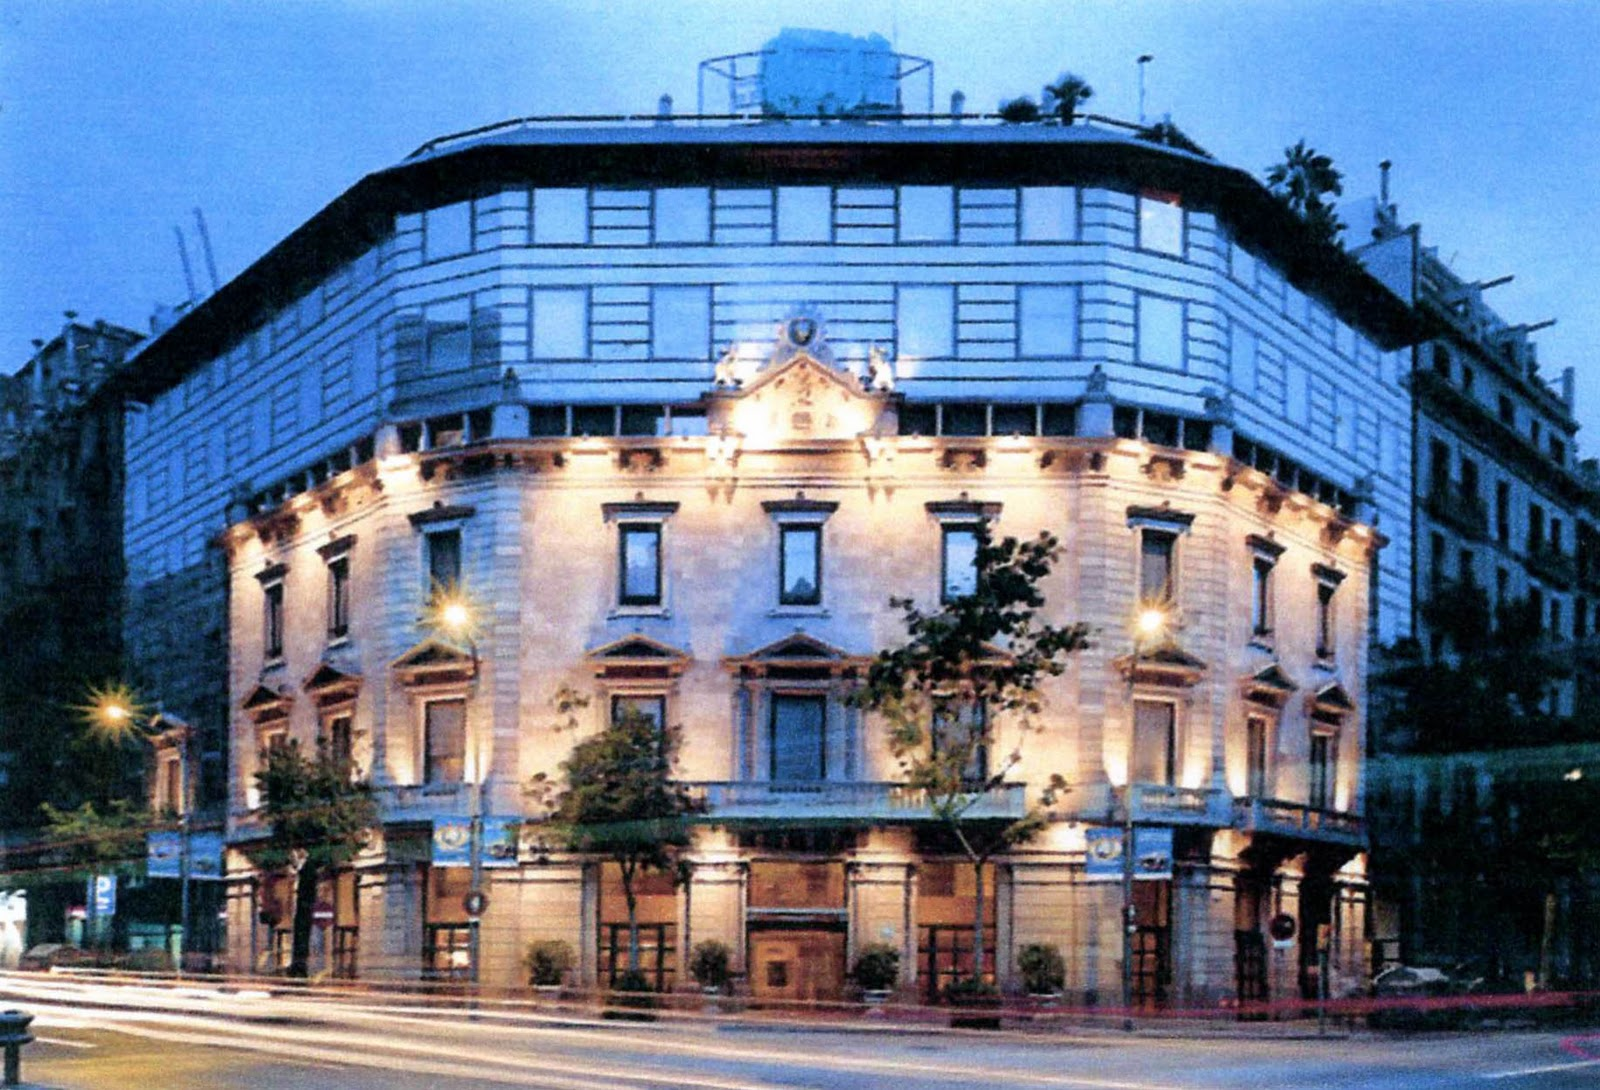 Hotelsforsaleinspain 5 star luxury hotel for sale in for Hotel bcn barcelona